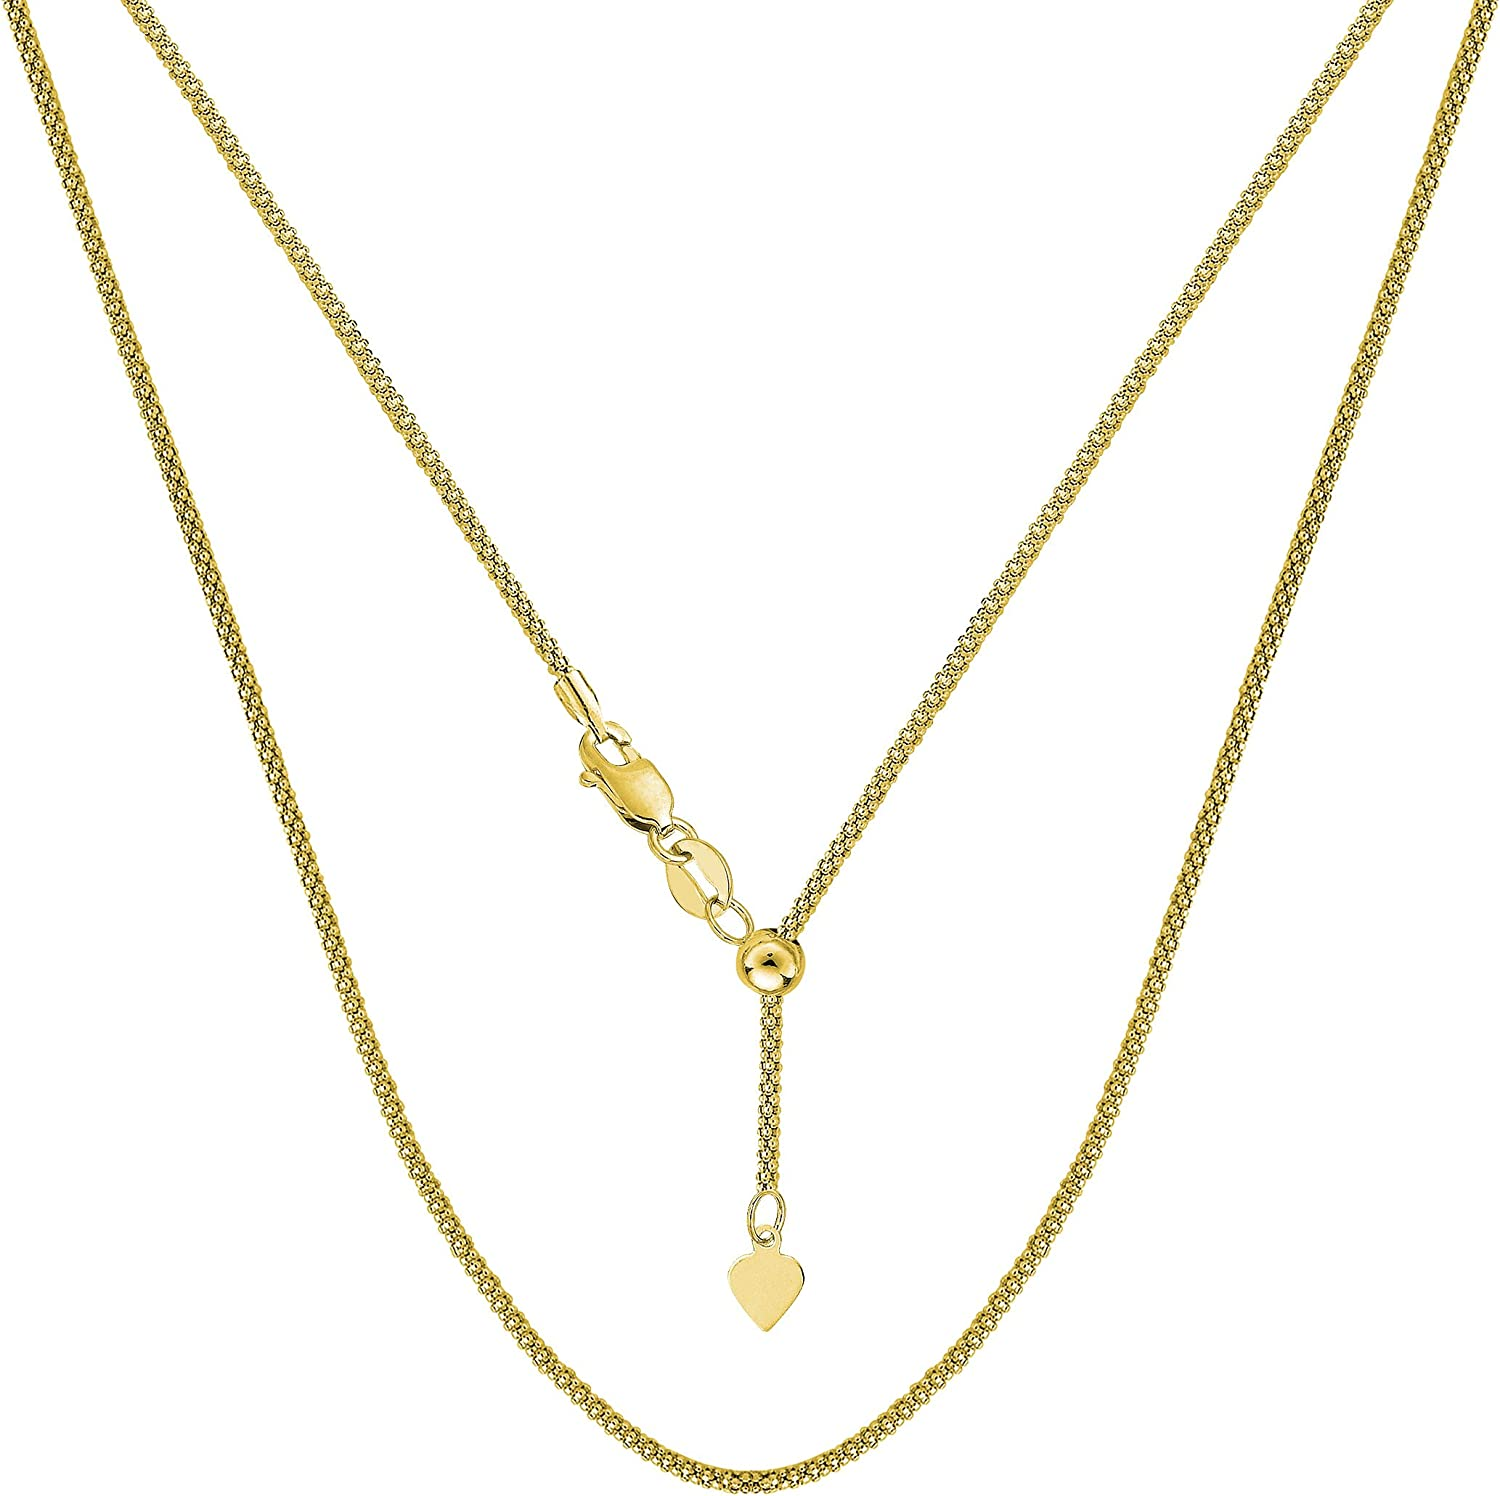 14k Yellow Gold Adjustable Popcorn Link Chain Necklace, 1.3mm, 22